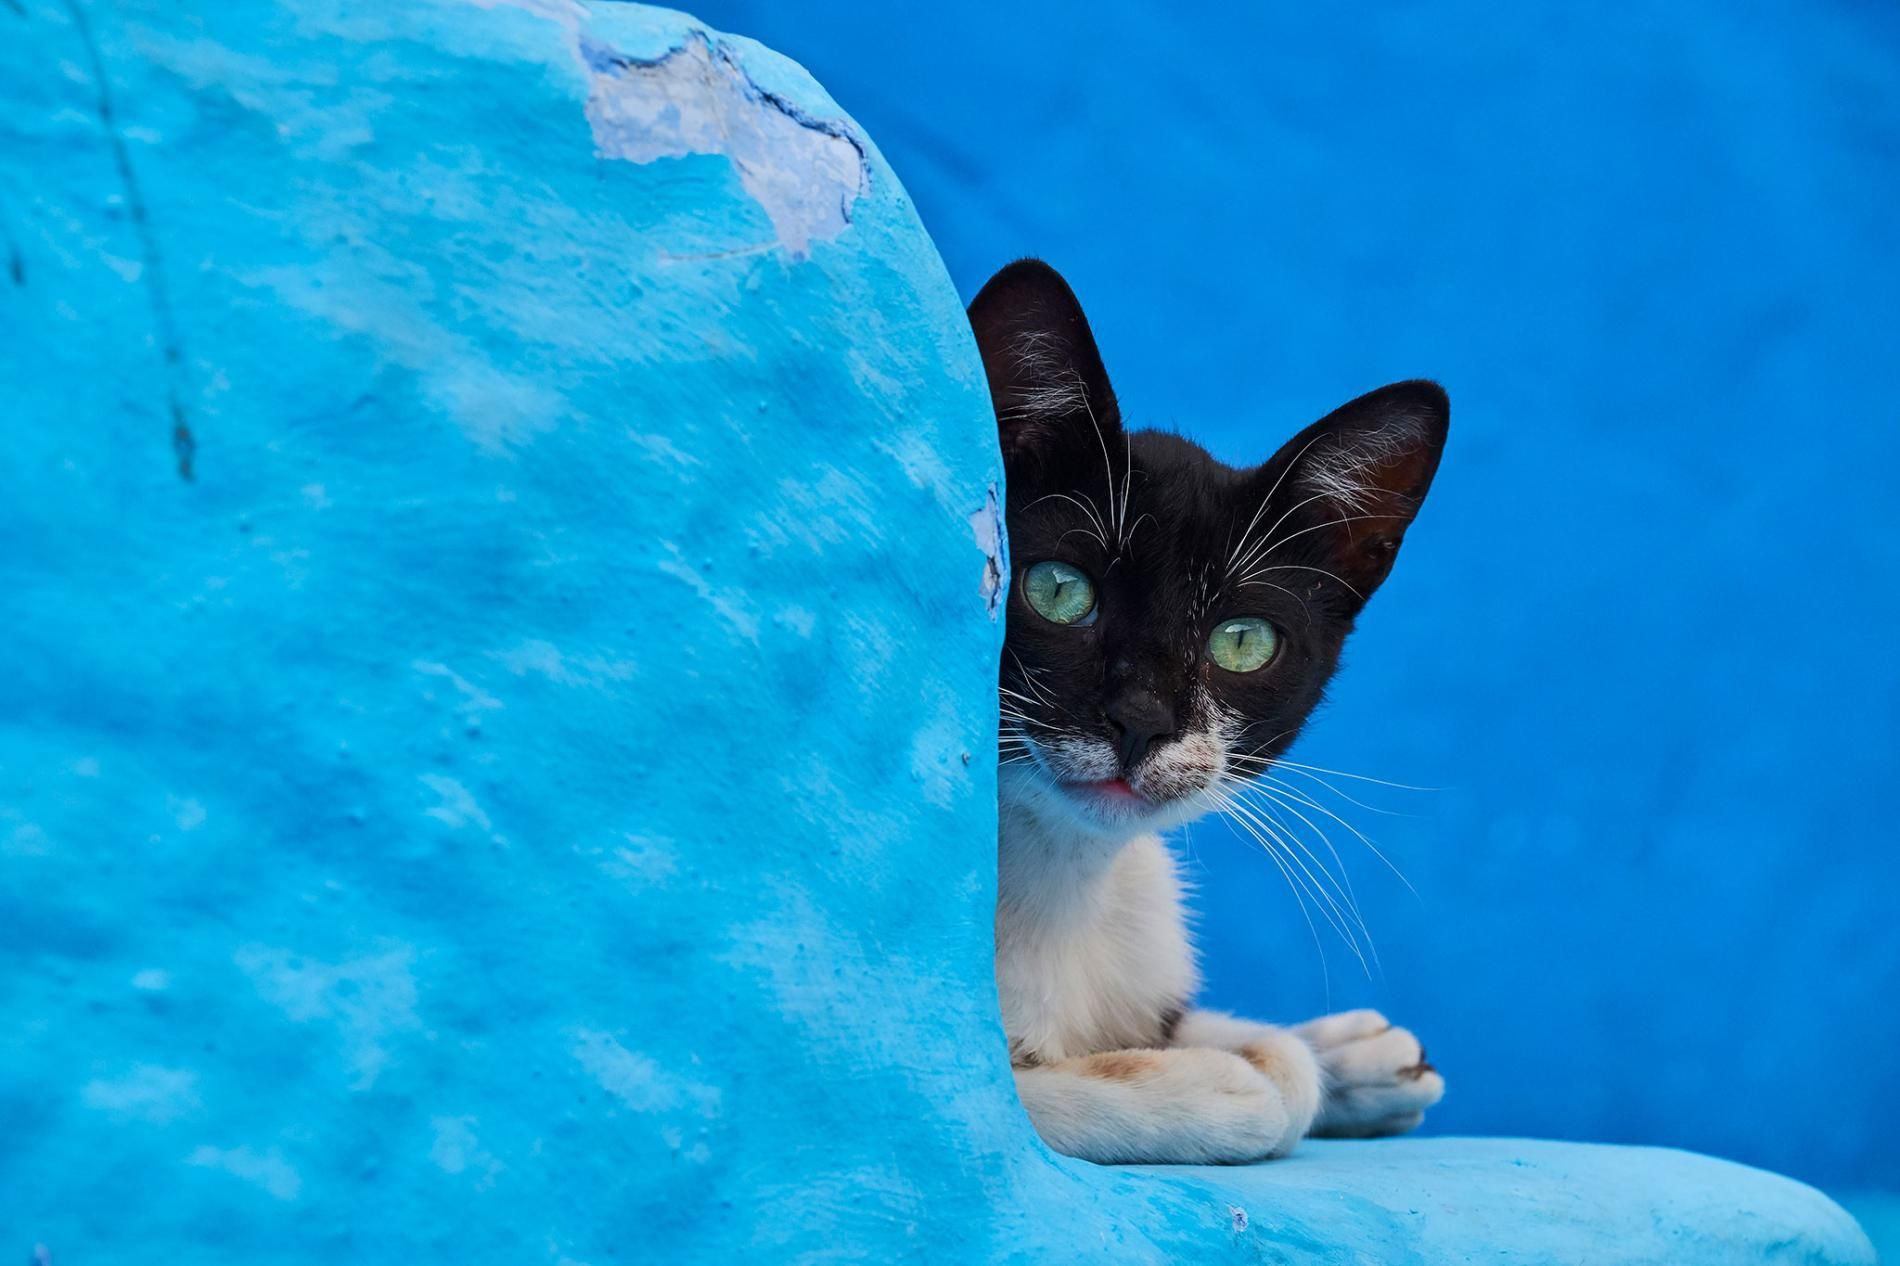 See the lives of street cats around the world Cats, Cat